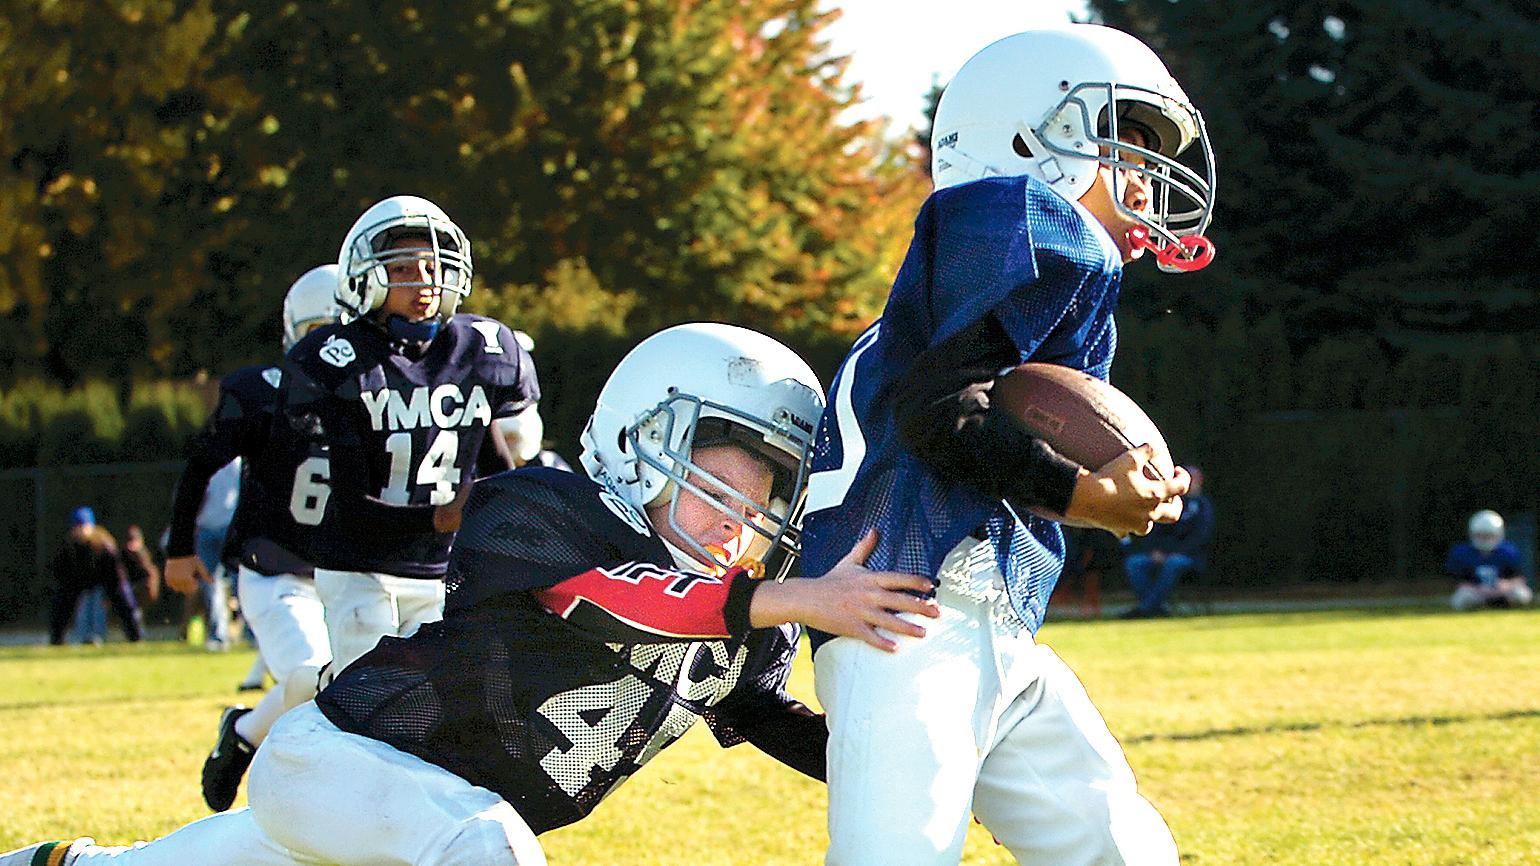 Sysa Says Ymca Caused Youth Tackle Football League To Shutter The